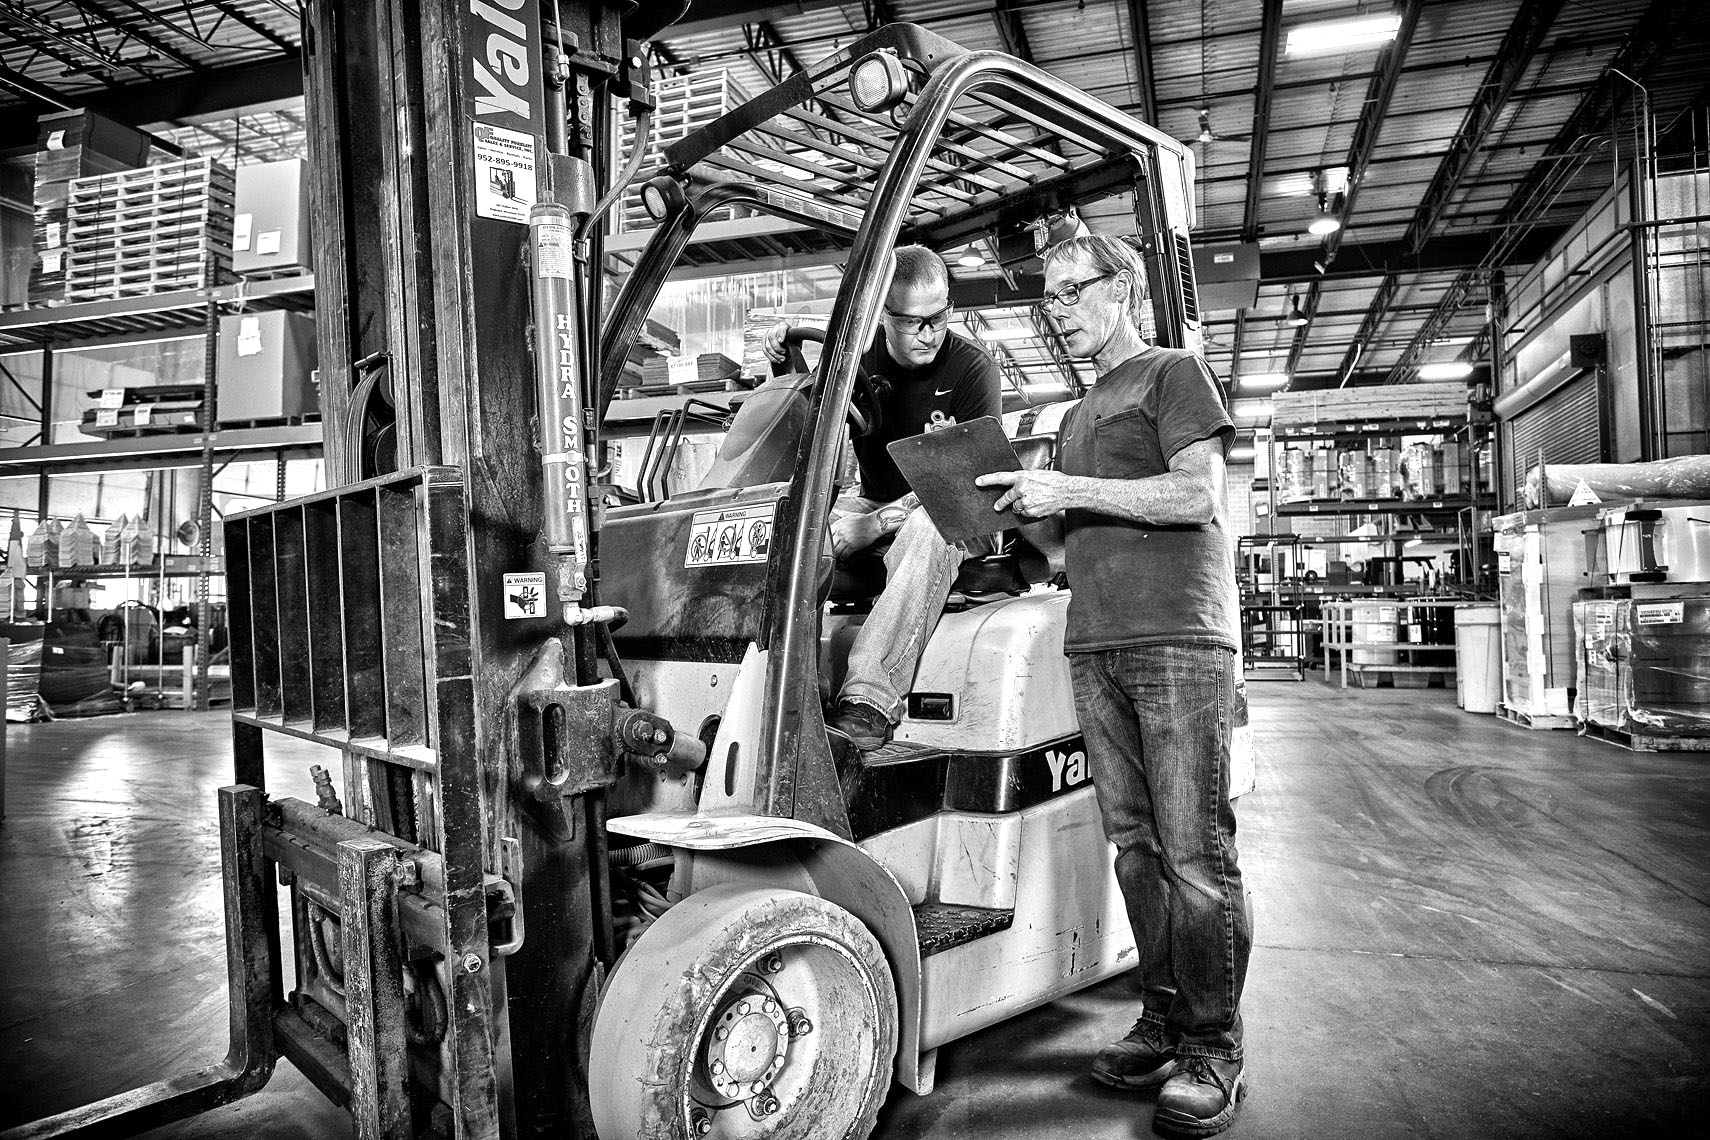 Tempair/forklift/b&w/warehouse/lifestyle photo/InsideOut Studios